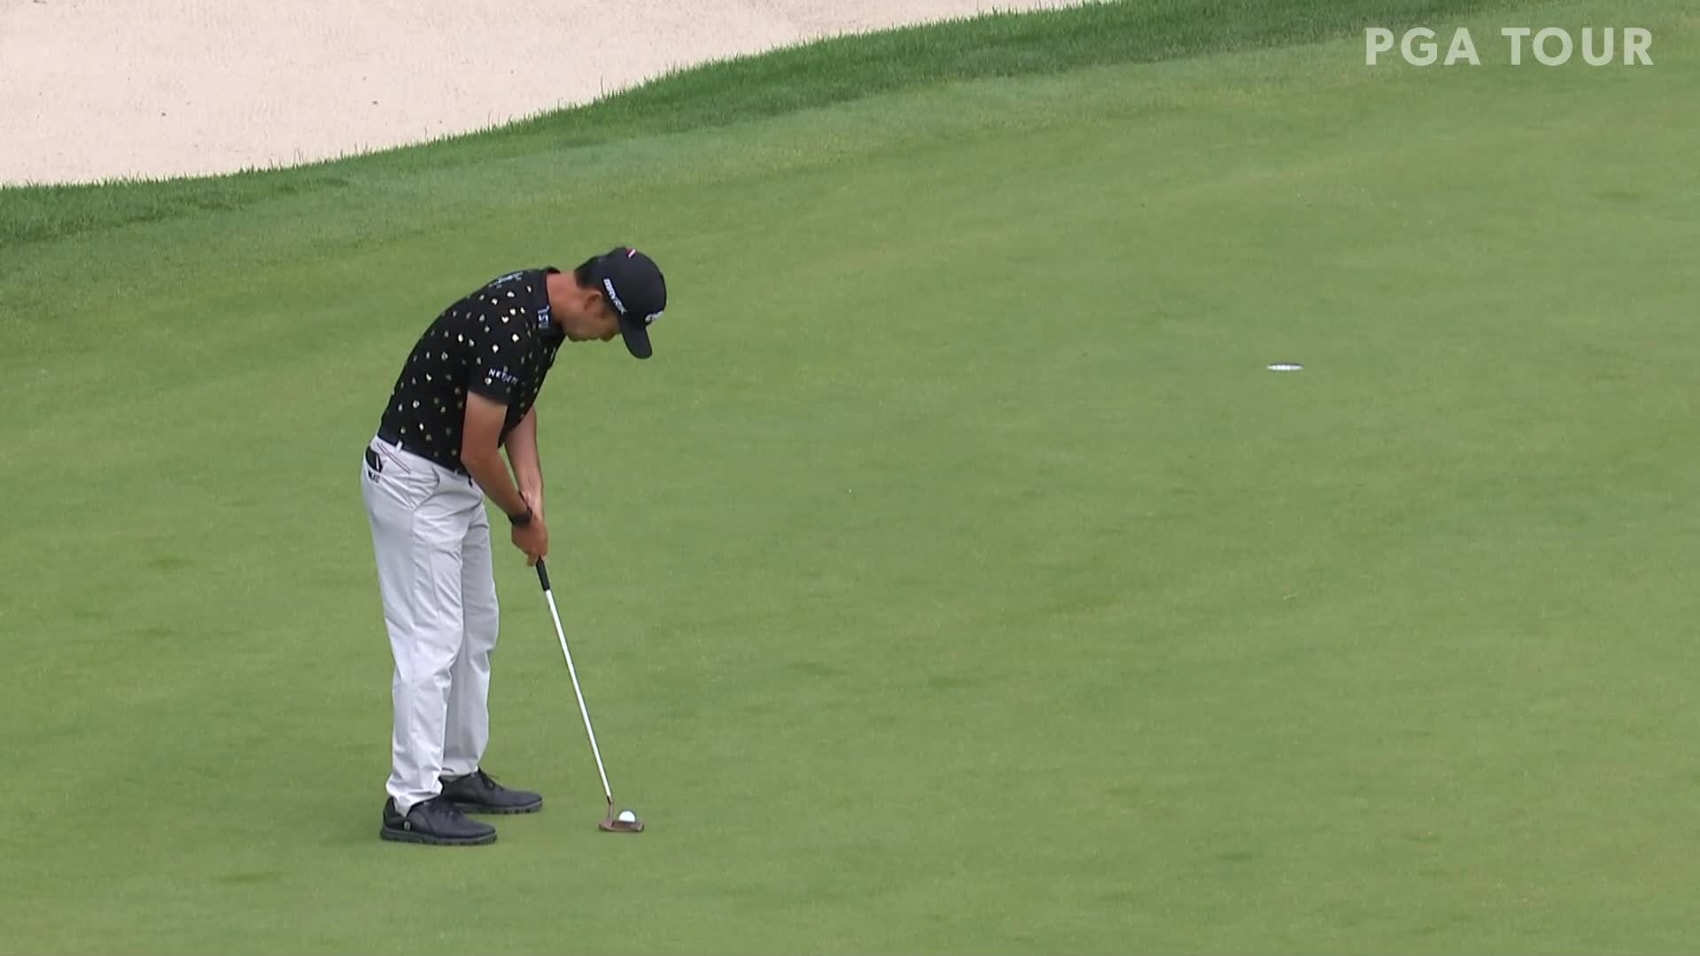 In the final round of the 2020 Travelers Championship, Kevin Na makes a 23-foot birdie putt on the par-4 18th hole.